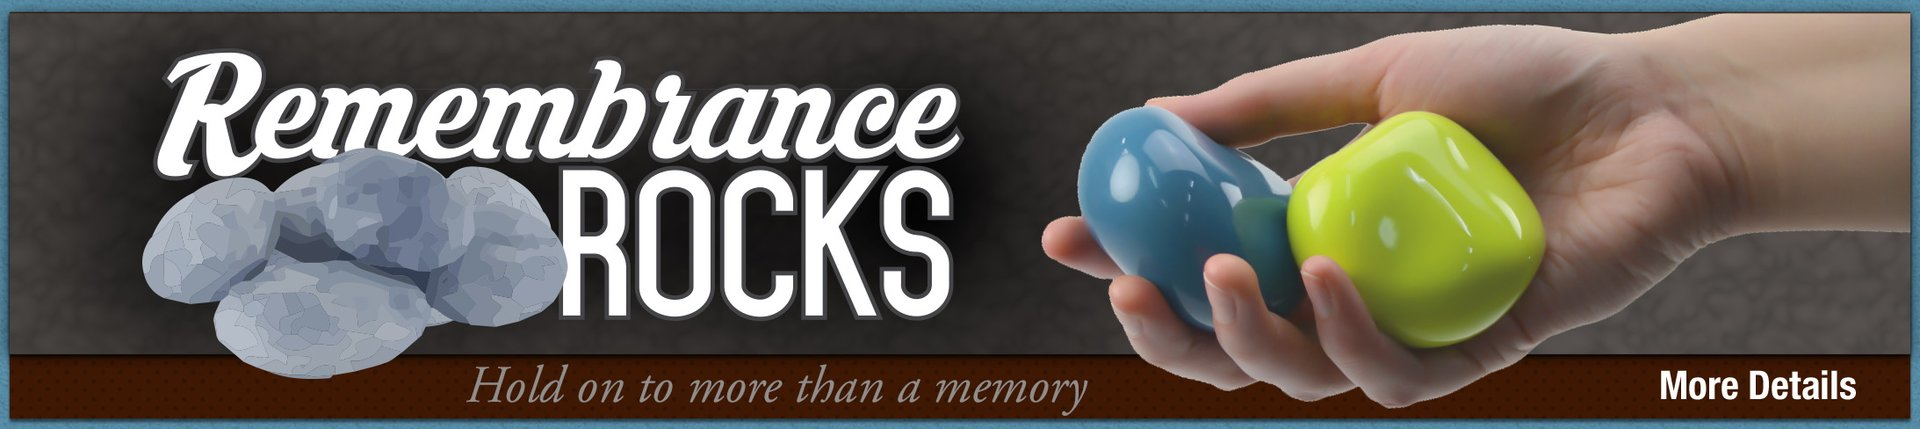 Remembrance rocks banner